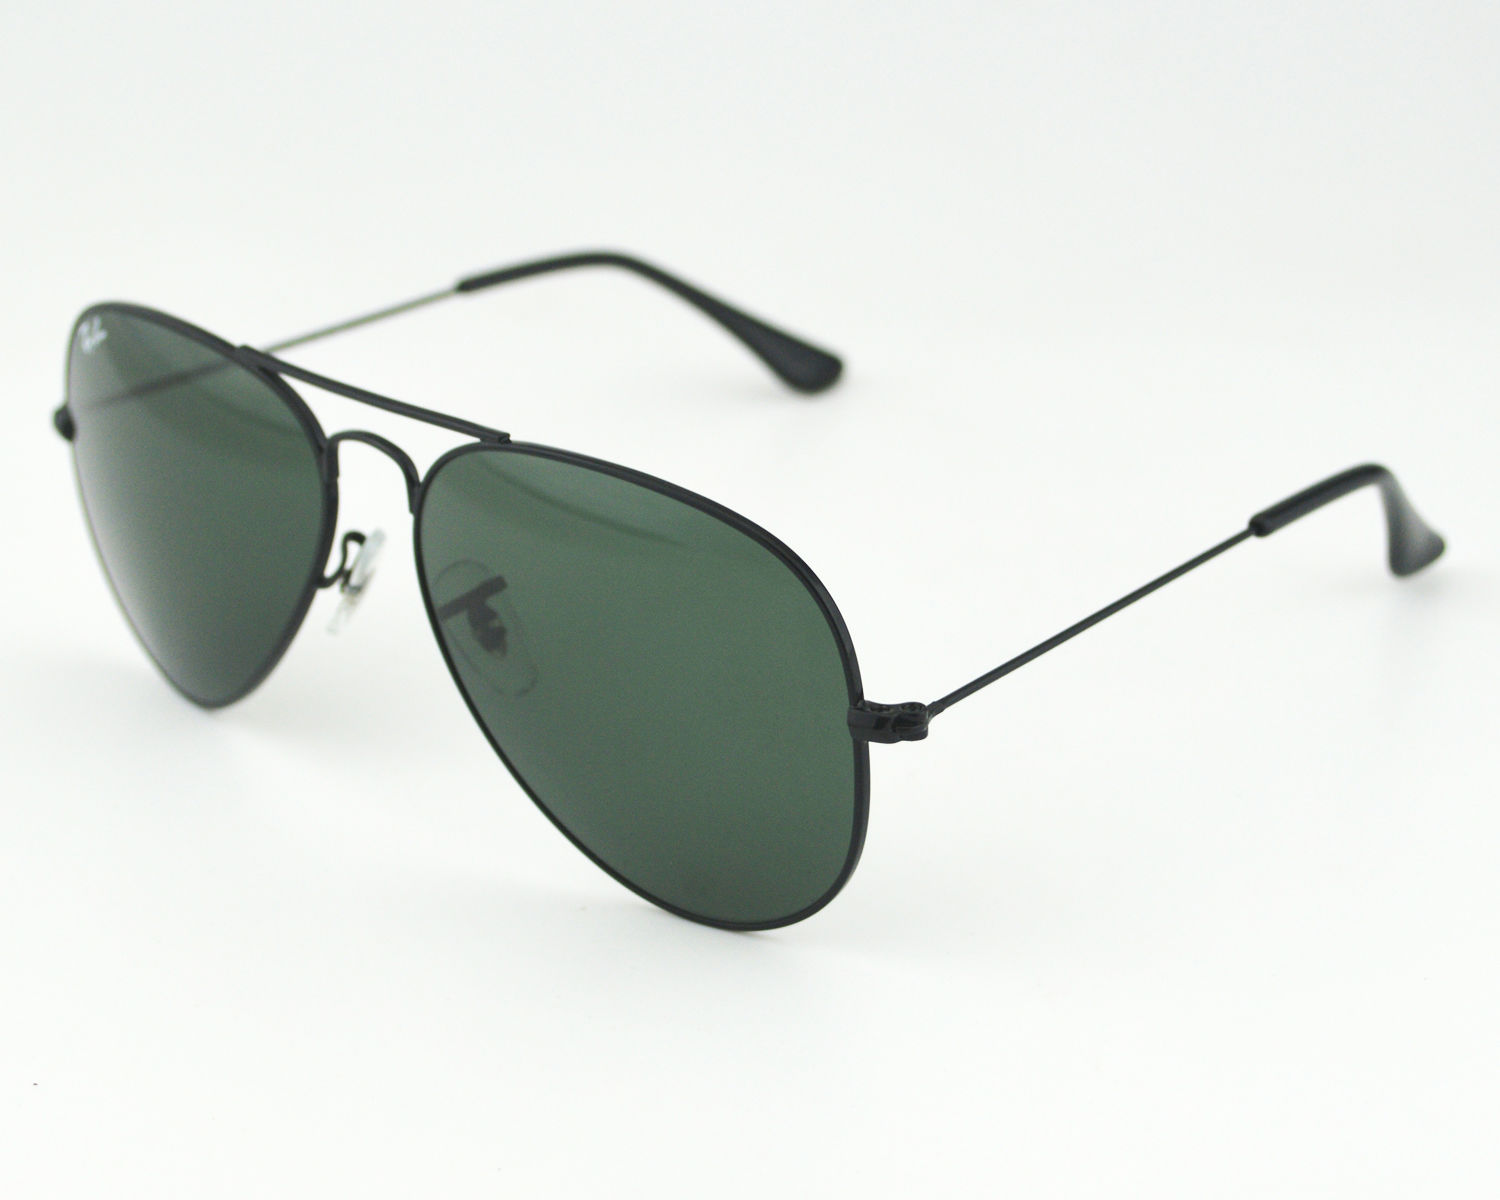 1cdfd96048 Product Details. Ray-Ban RB 3025 Aviator Classic Large Metal L2823 Black  Frame Green ...